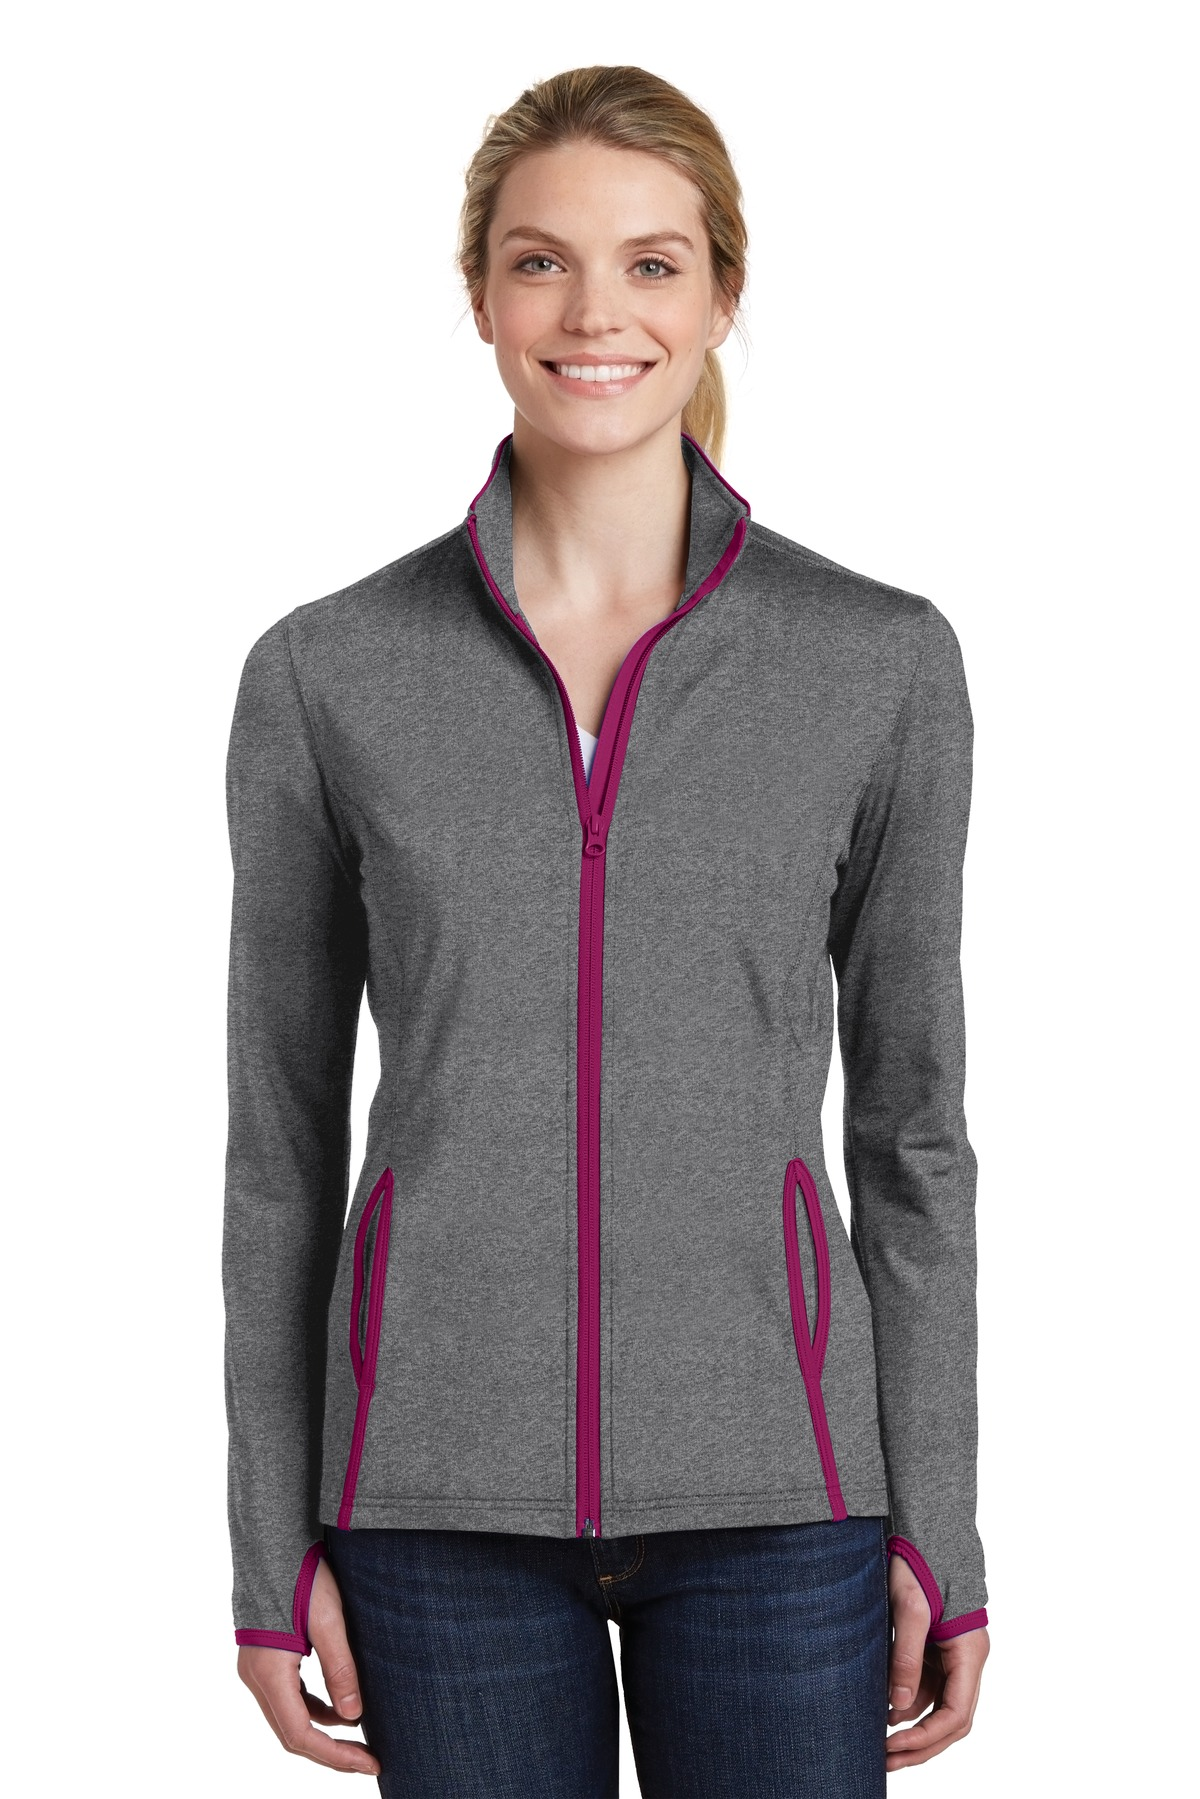 click to view Charcoal Grey Heather/ Pink Rush